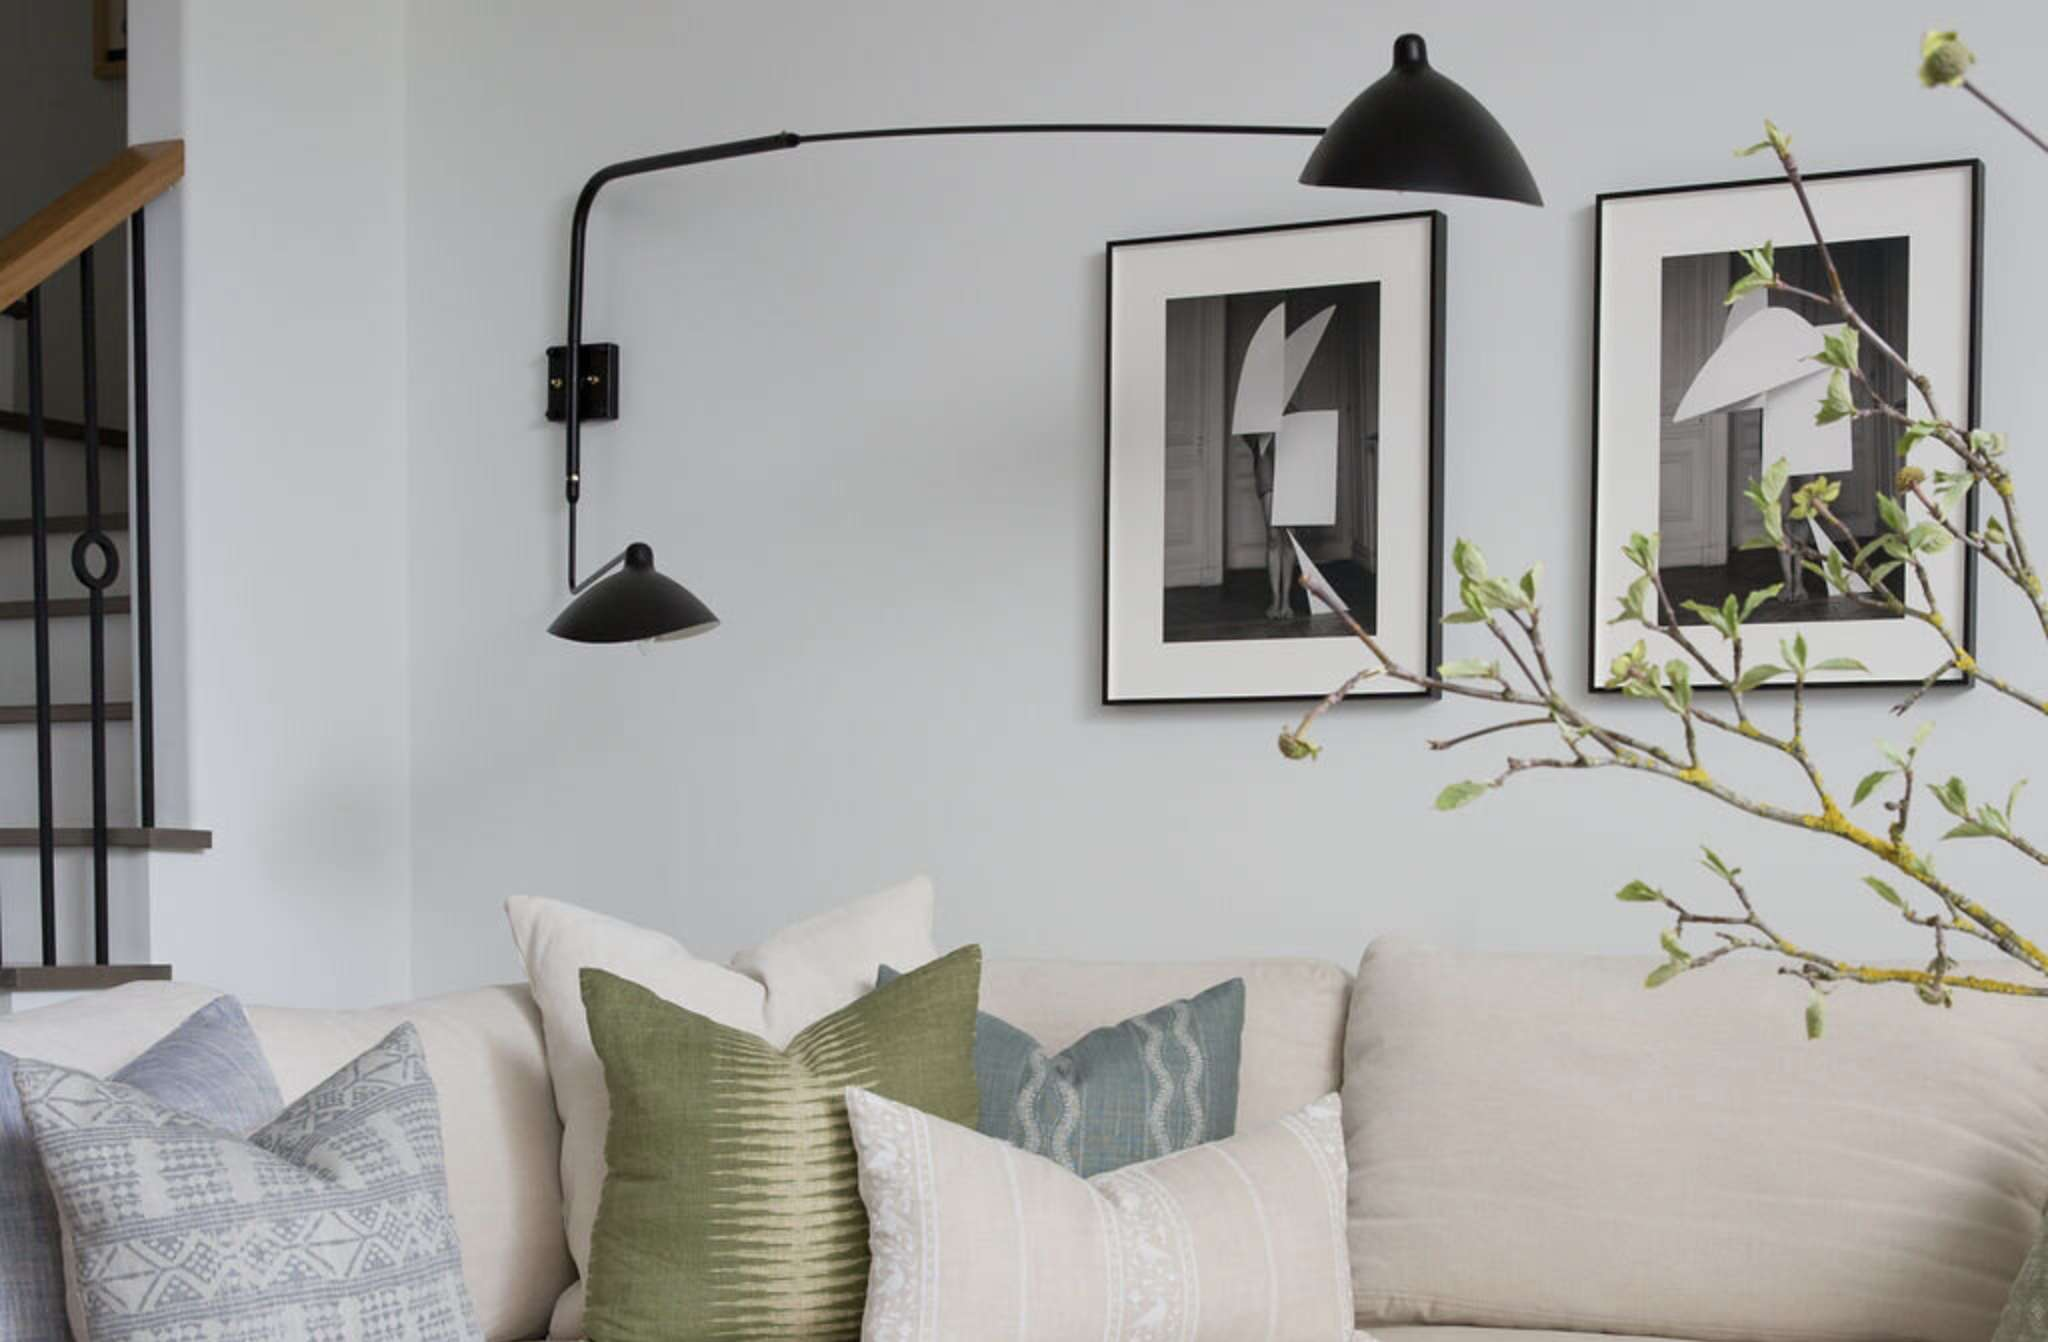 living room with black, gray, and white artwork, black sconces hanging in corner behind couch